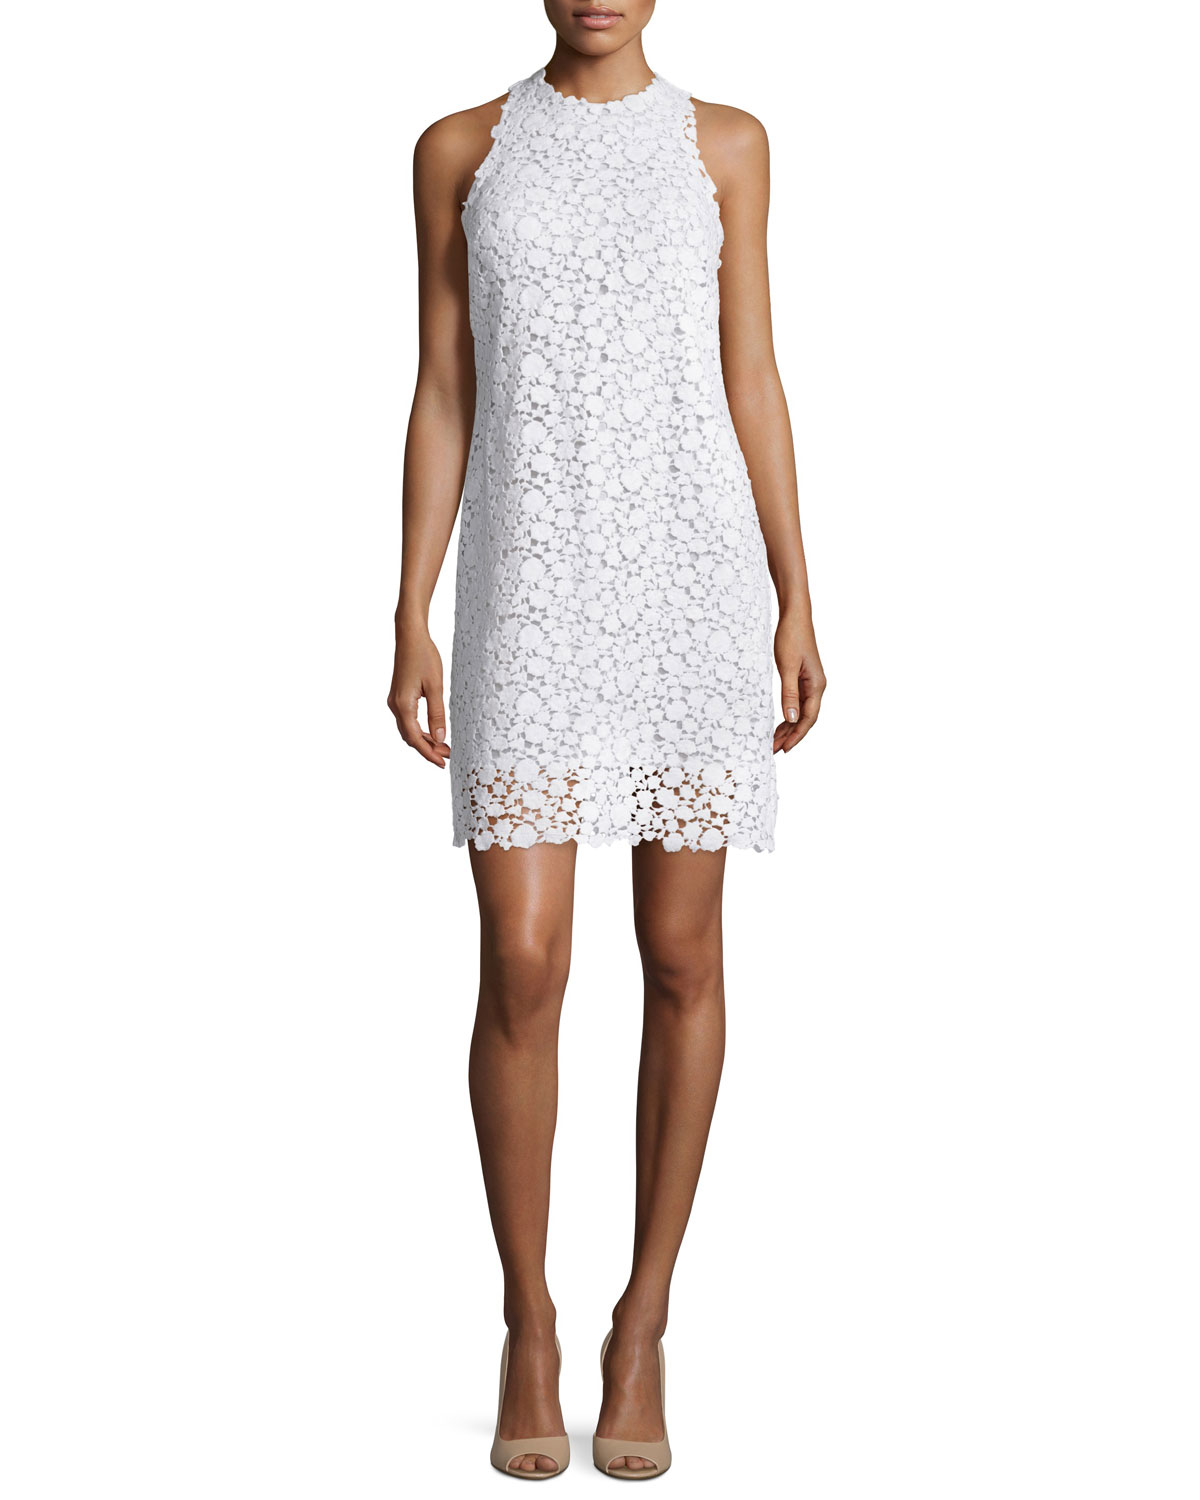 75e420ffa09 MICHAEL Michael Kors Sleeveless Floral Lace Dress in White - Lyst